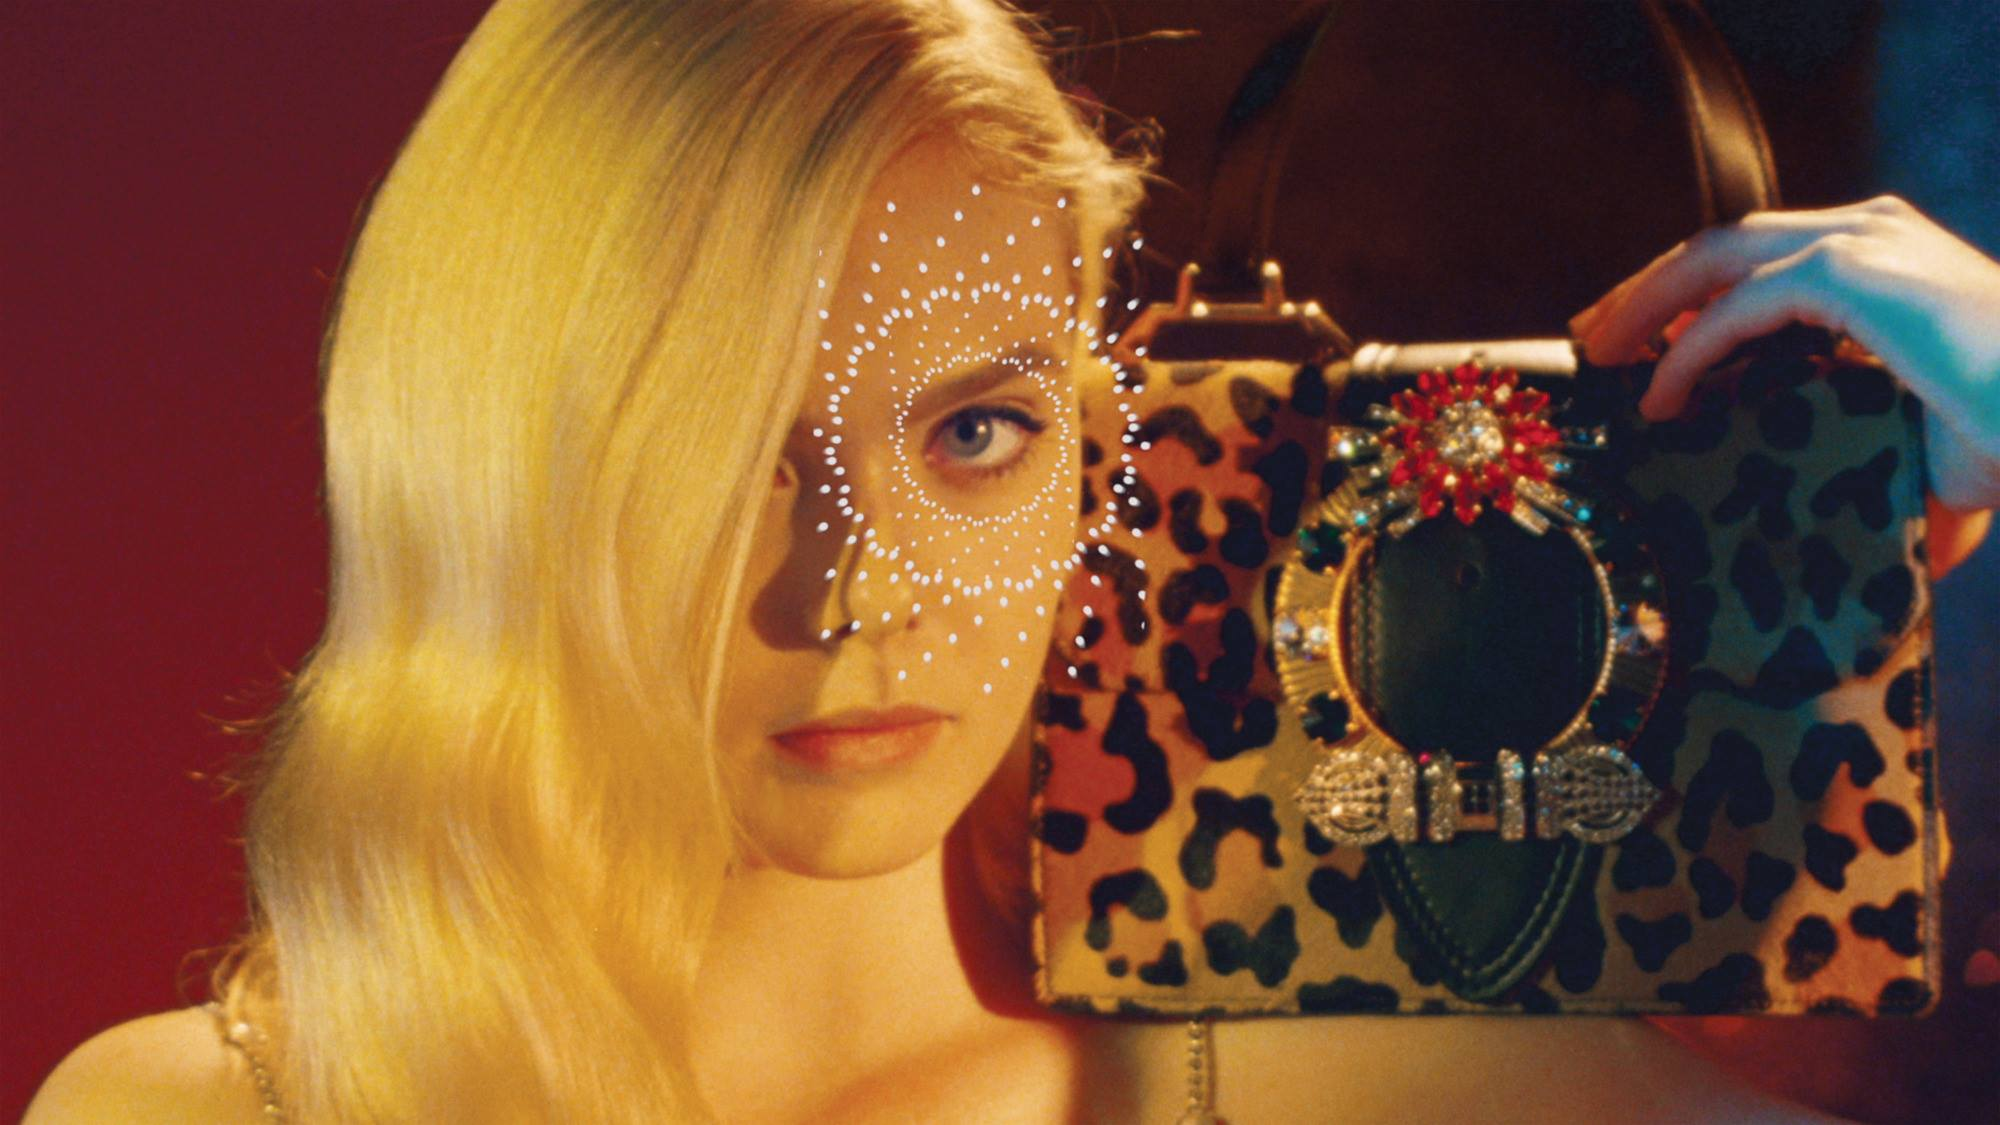 Miu Miu, miu miu, brand, Christmas campaign, Italian brand, ad campaign 2019, fashion photographer, Gordon von Steiner, actress, Elle Fanning, model, Eniola Abioro, Olivia Forte, Olivia Anakwe, Fall-Winter 2018/19 collection, trends 2019